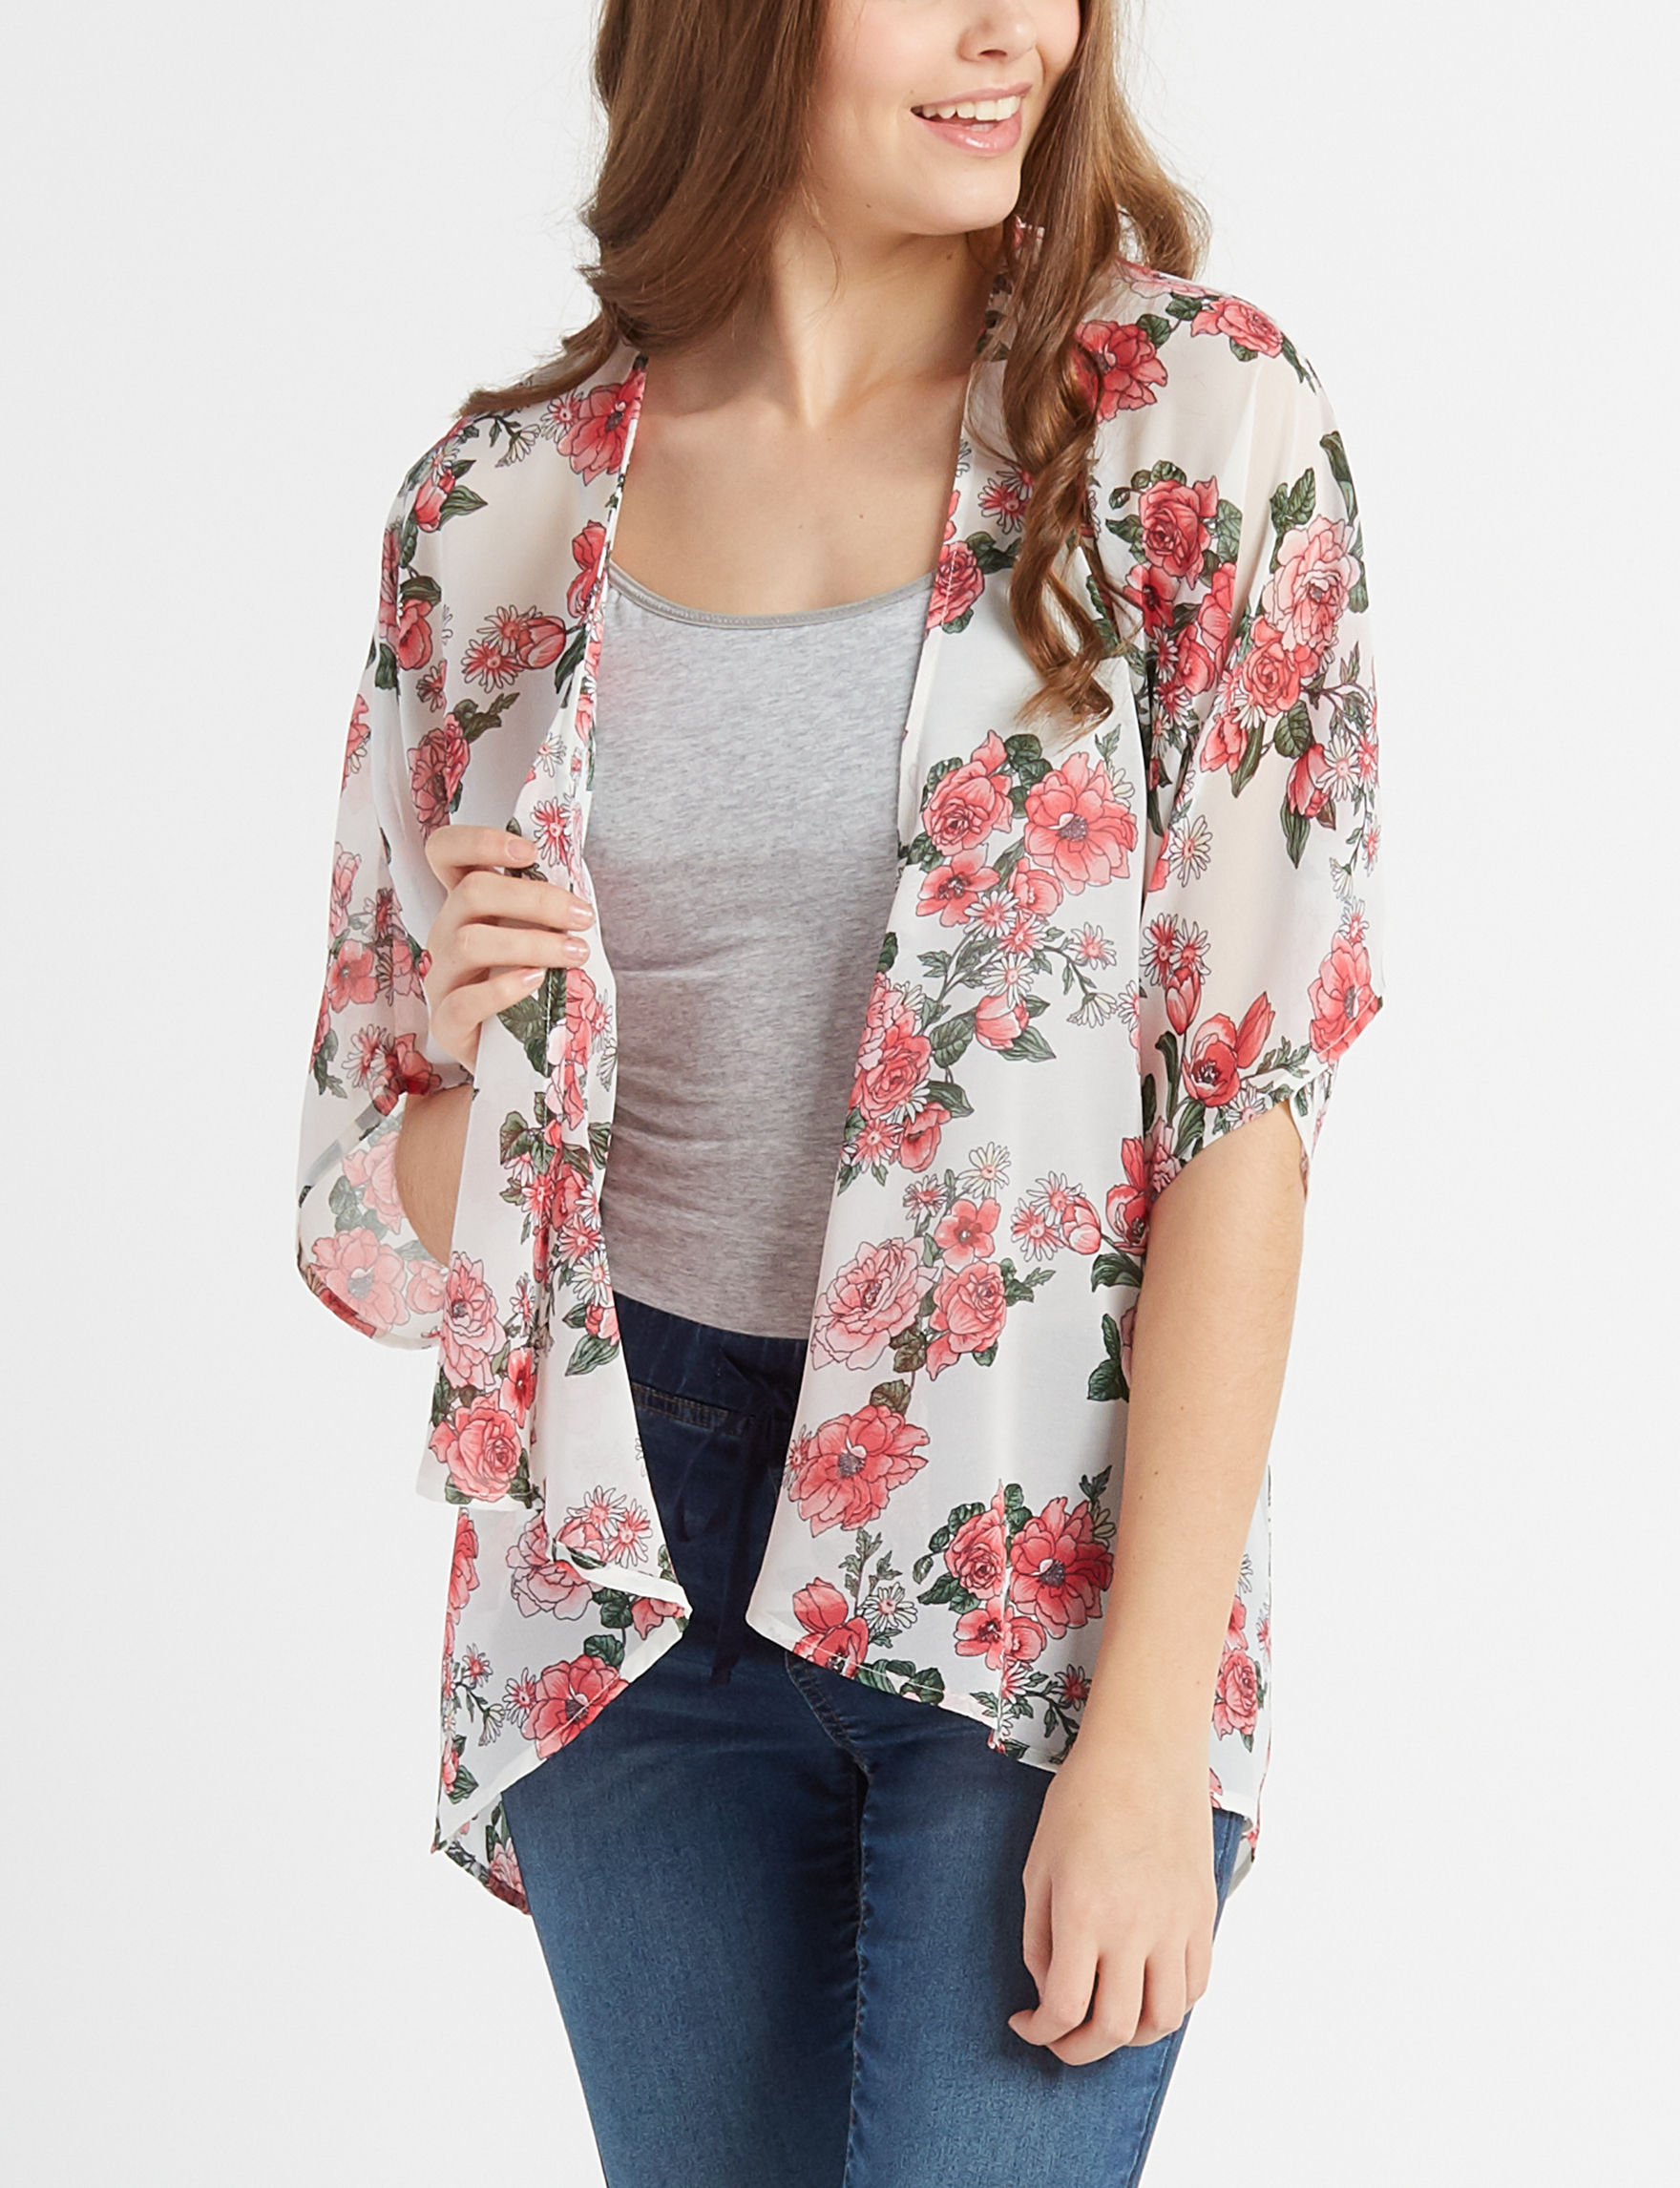 Liberty Love White Floral Shirts & Blouses